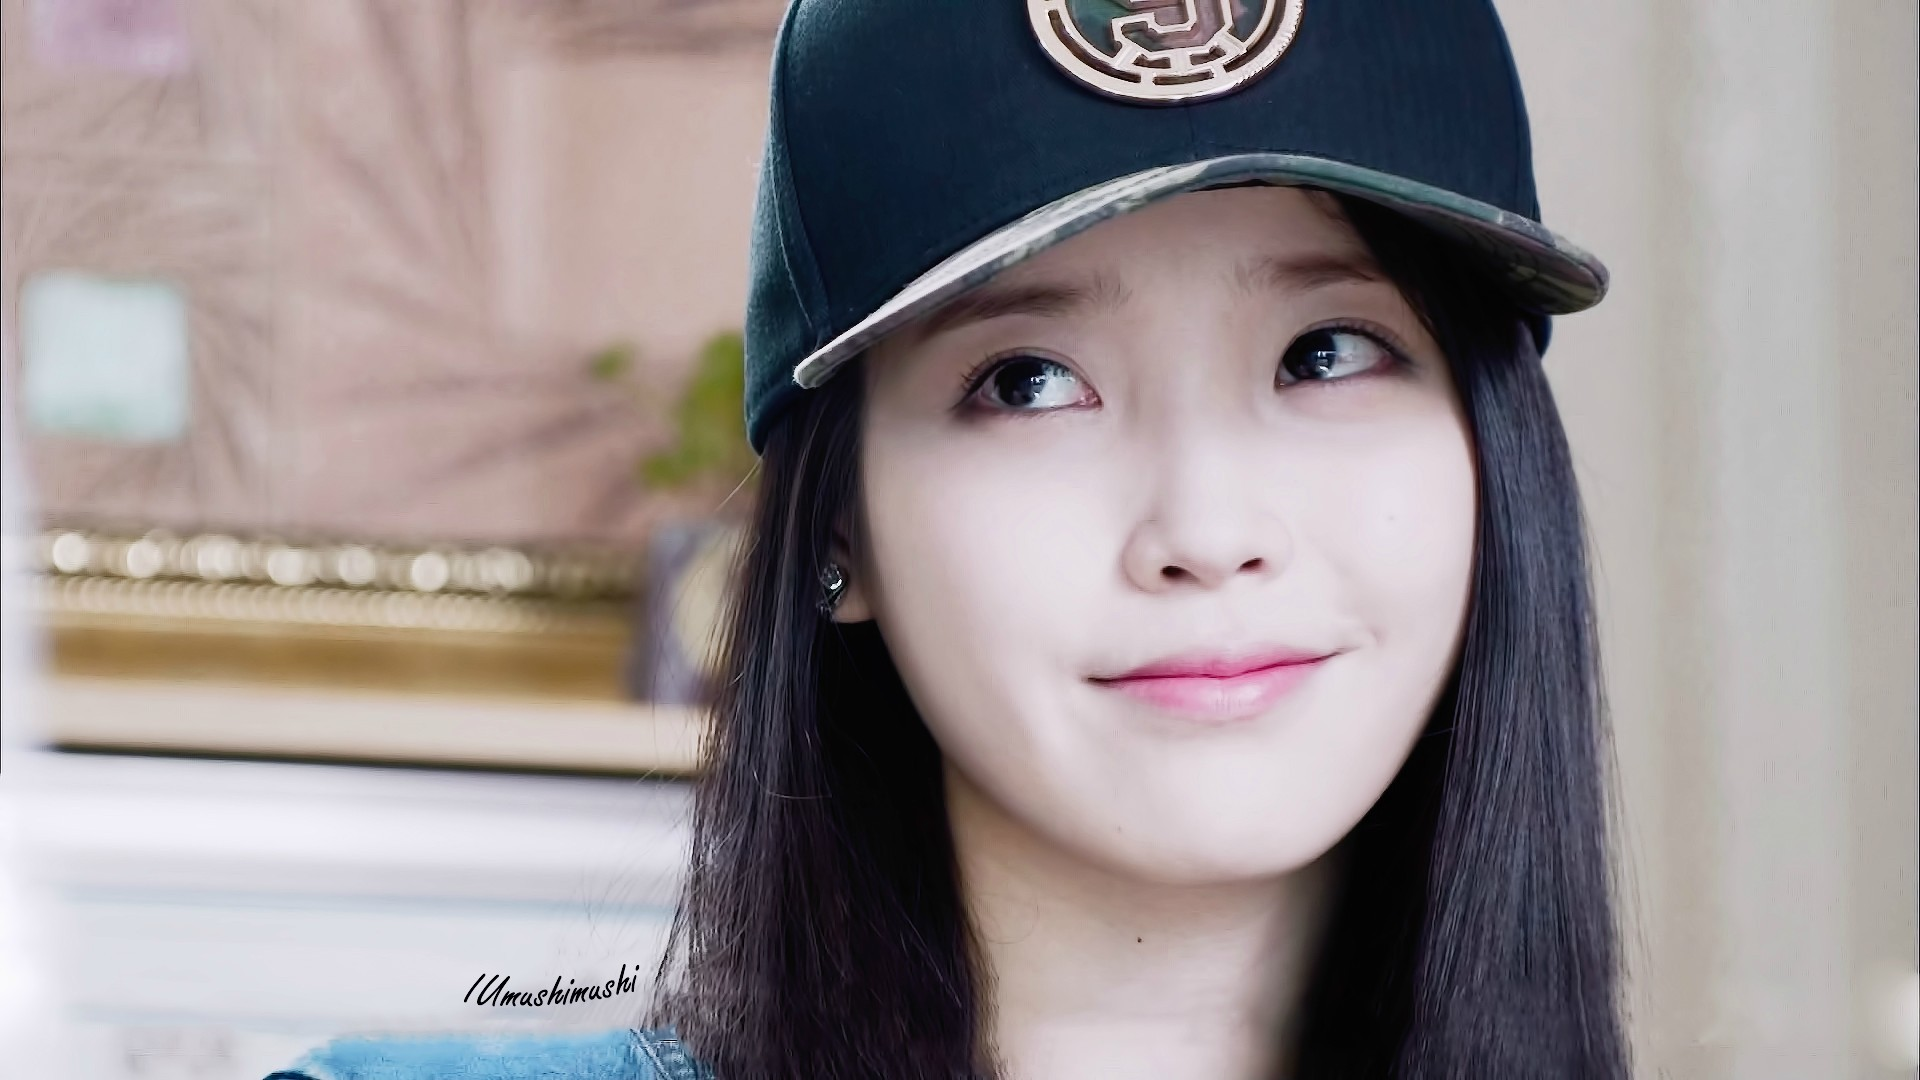 cindy smiling 1920x1080 iu wallpaper 38537267 fanpop